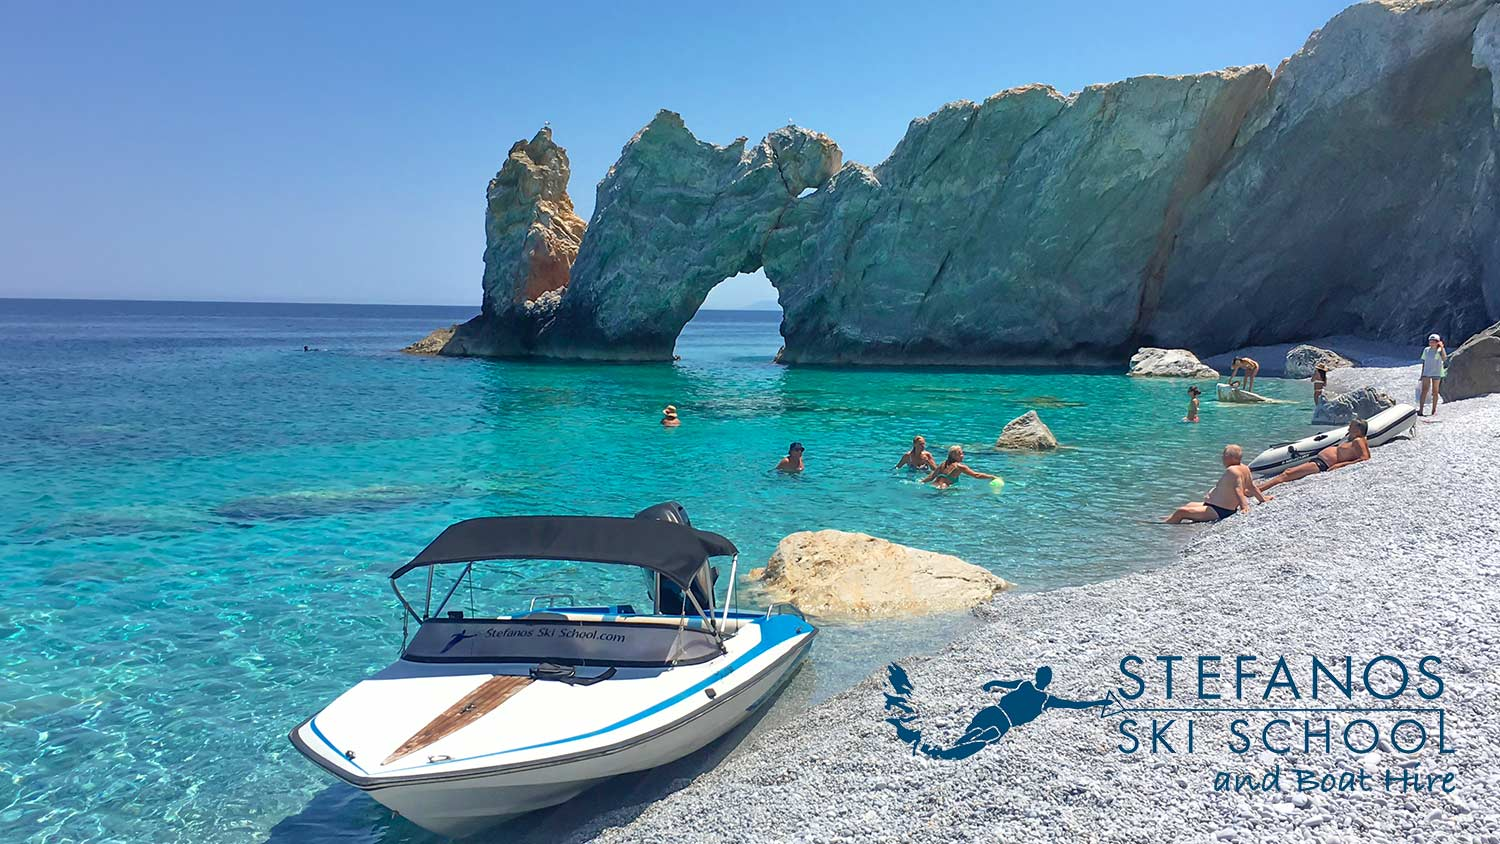 Lalaria Beach, Boat Trips with Stefanos @ Stefanos Ski School& Boat Hire